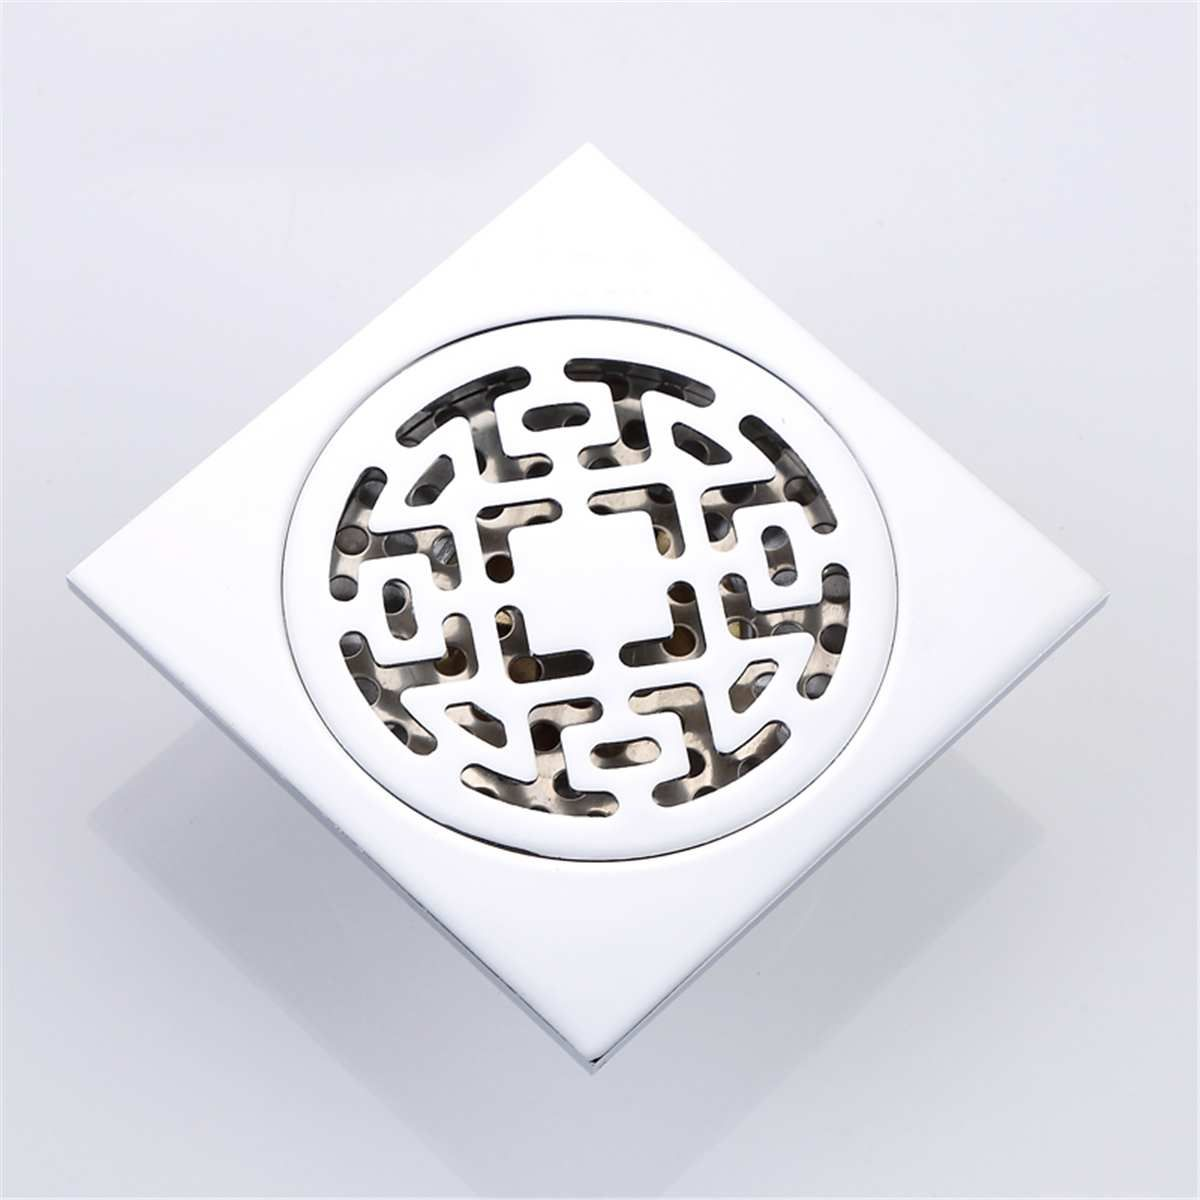 Shower Drain Cover Hair.Details About Stainless Steel Square Shower Drain Cover Bathroom Floor Strainer Hair Catcher